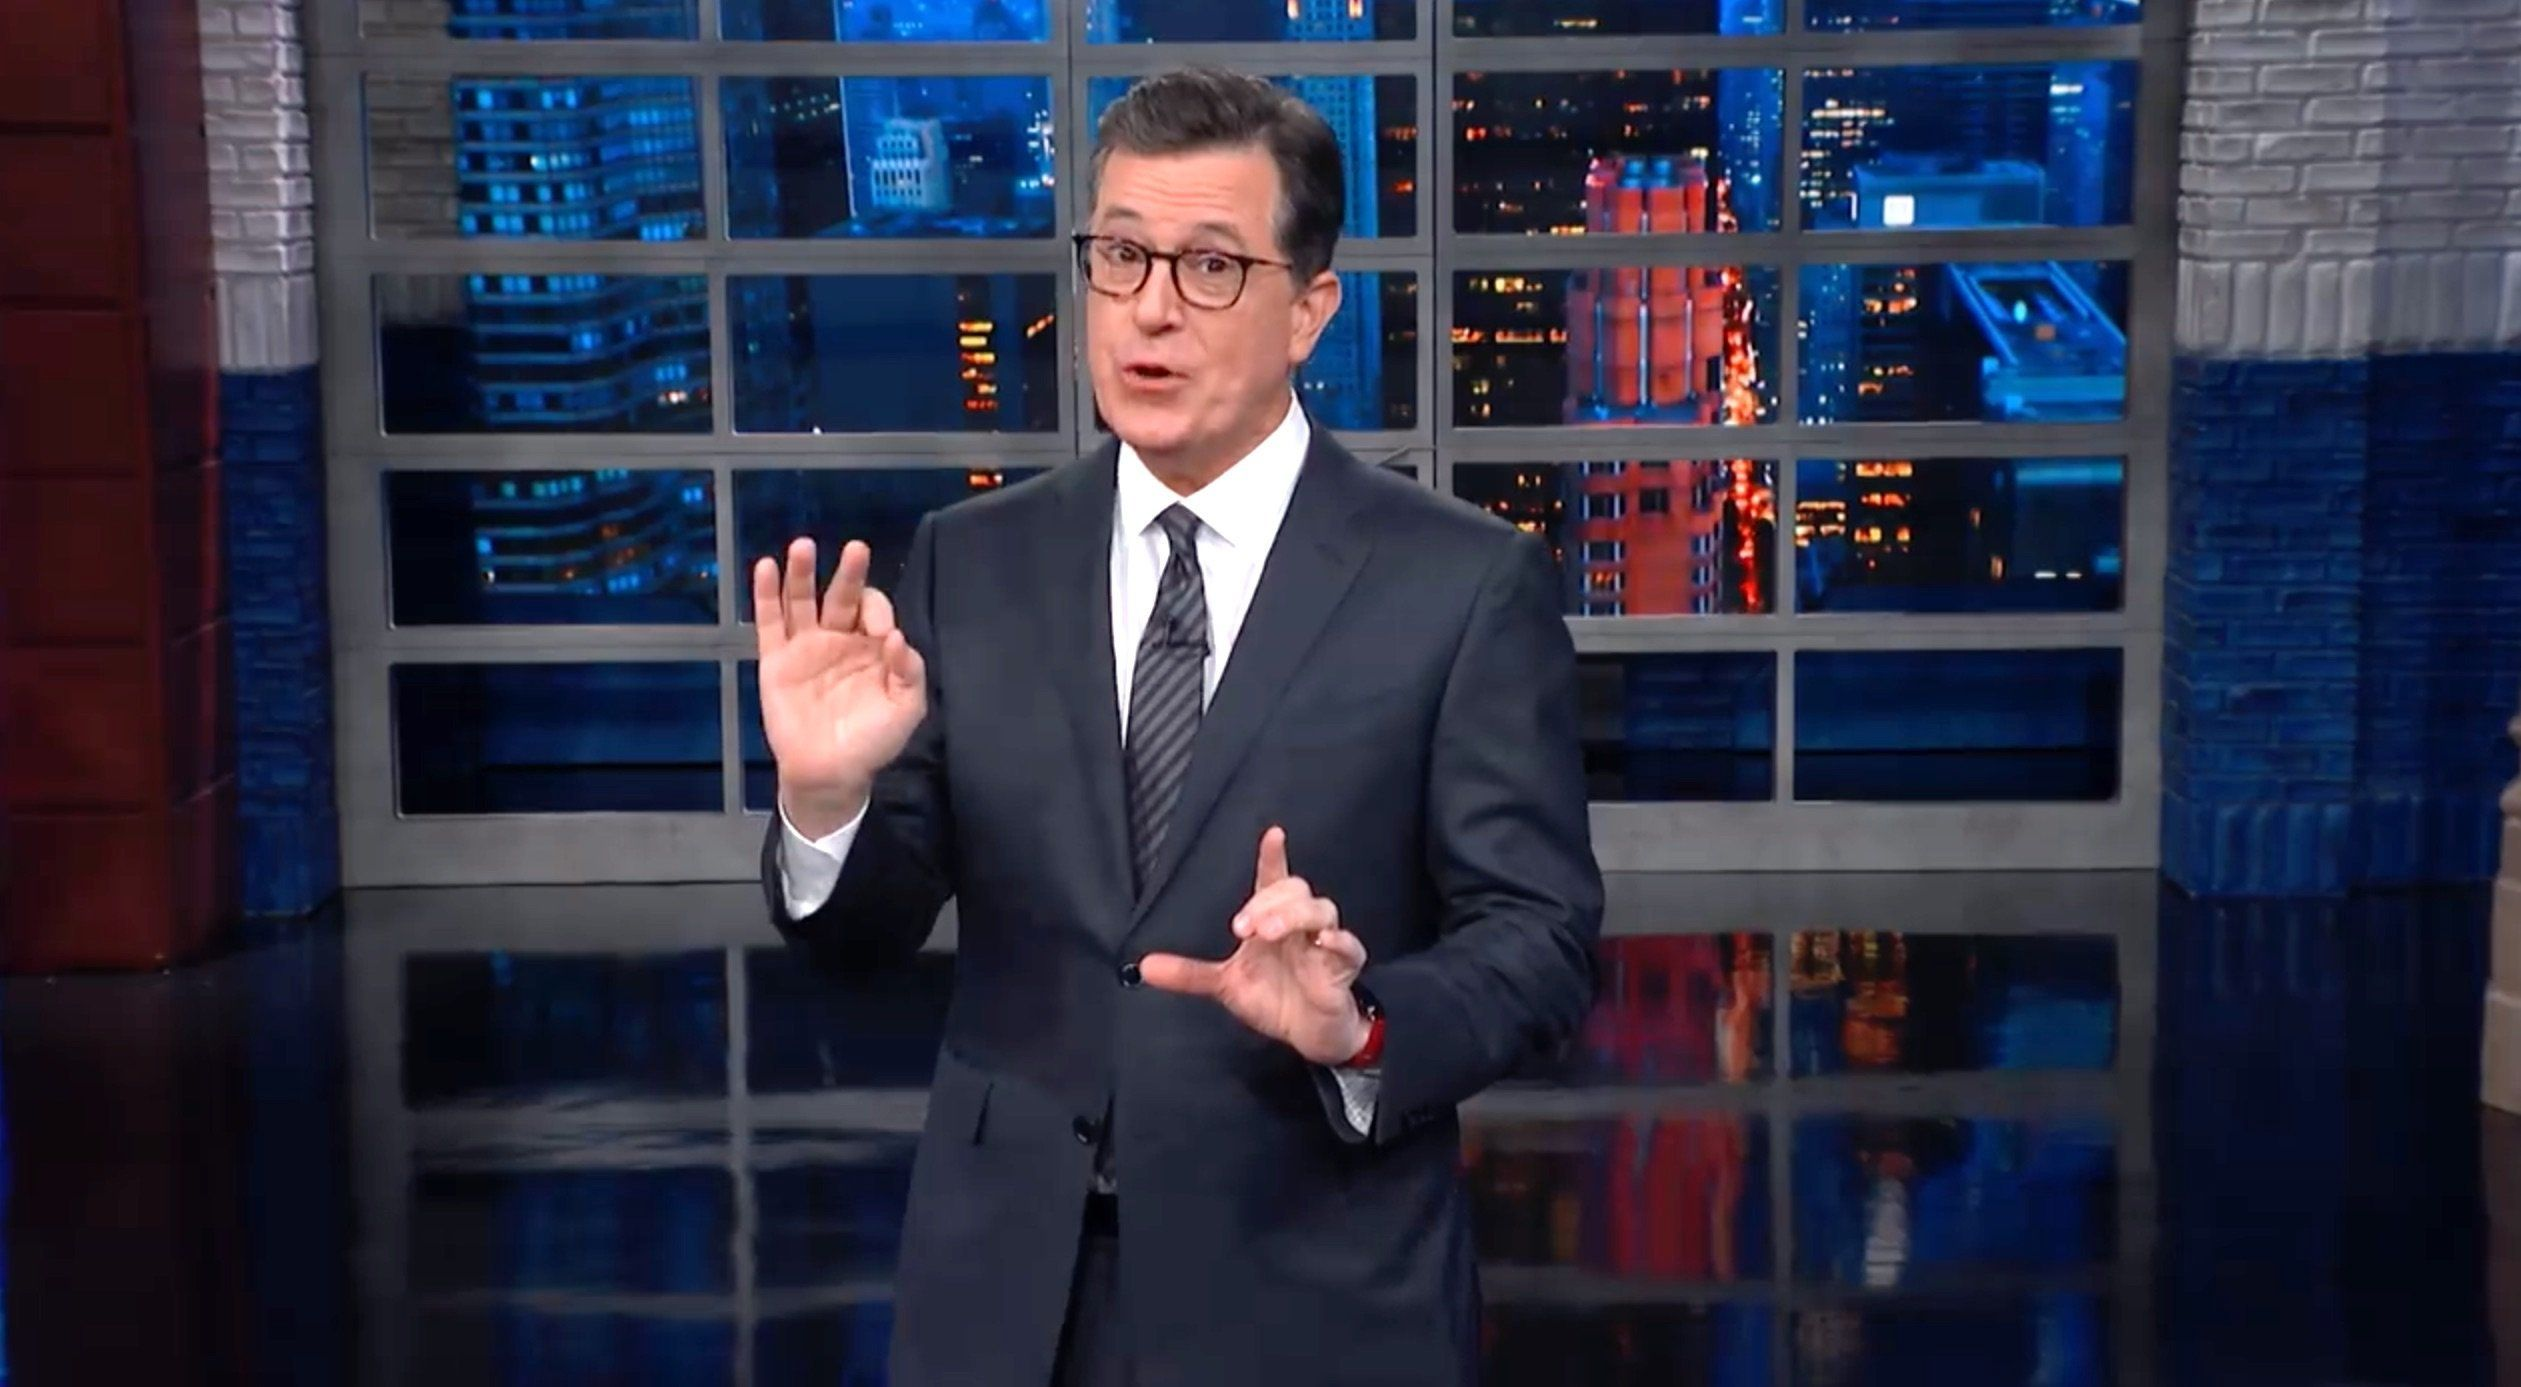 Stephen Colbert Reveals The Real 'National Emergency' In The Trump White